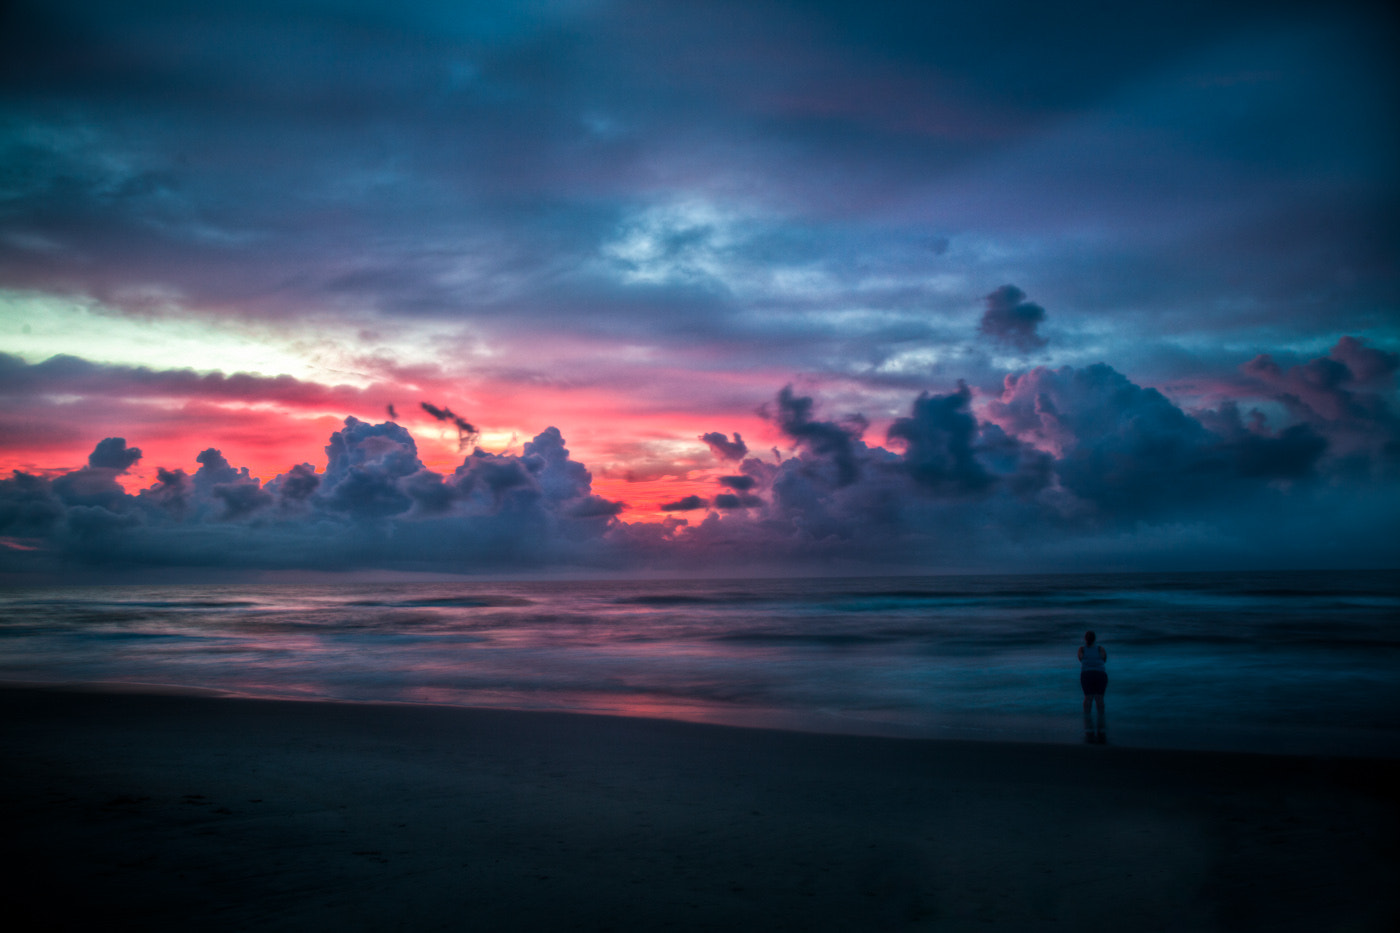 Photograph Quiet Peace by Brad Denny on 500px